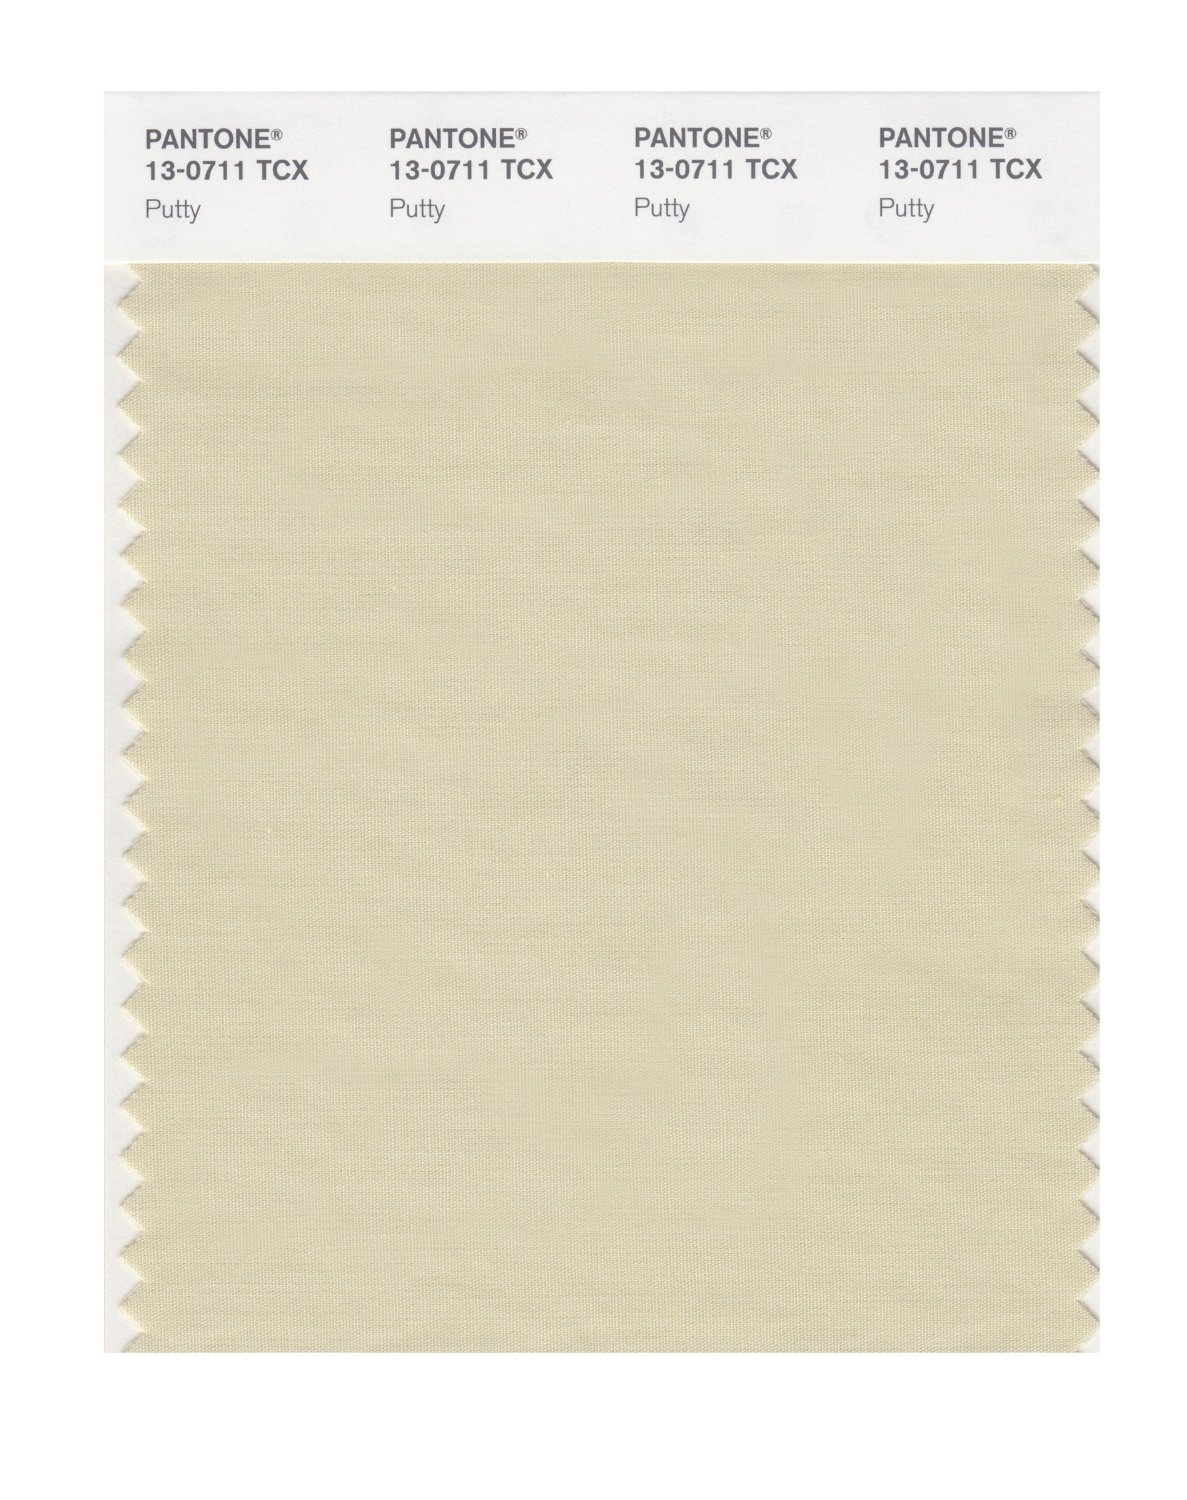 Pantone Smart Swatch 13-0711 Putty